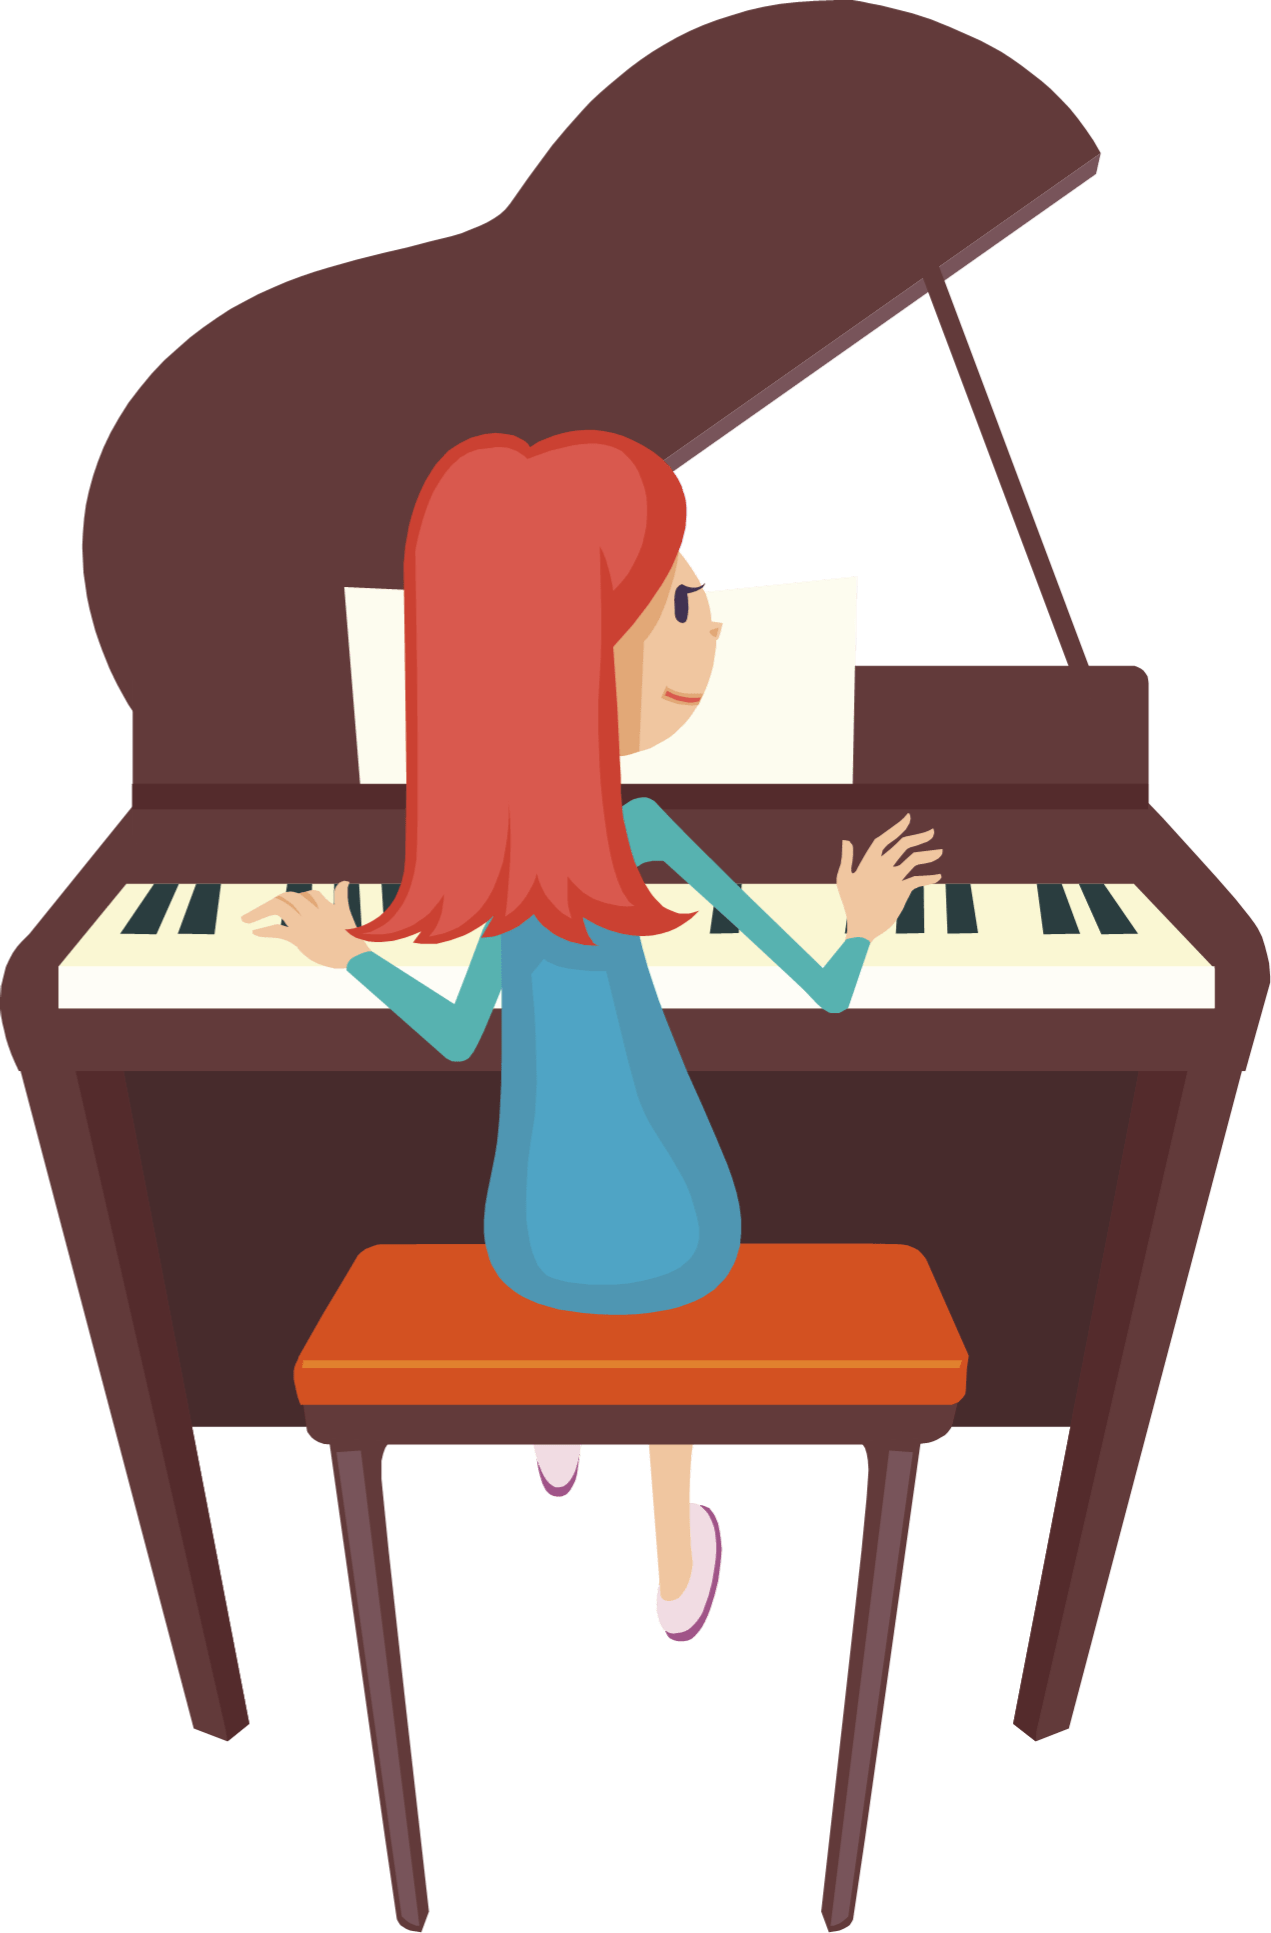 Woman playing piano clipart 3 » Clipart Portal.